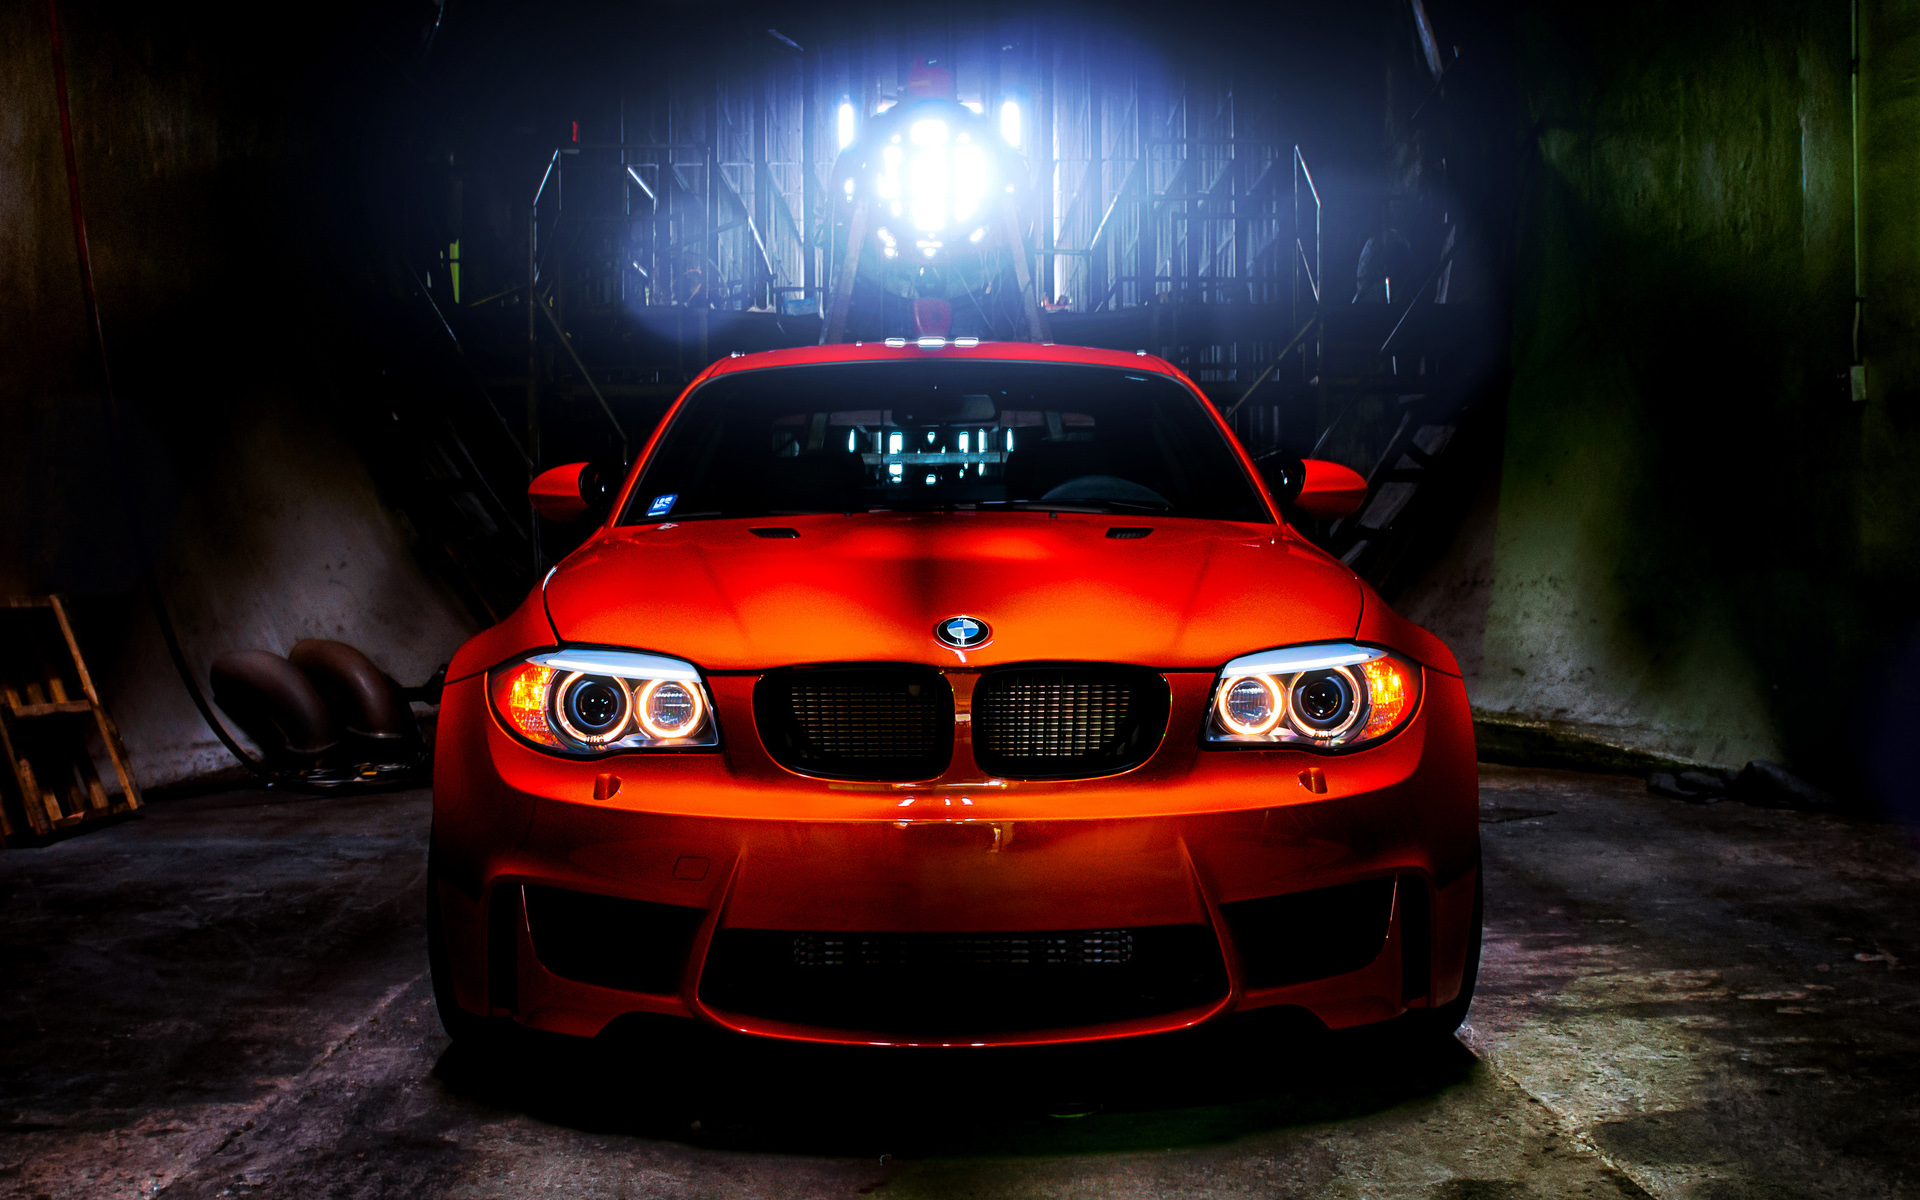 BMW 1M HDR Wallpaper | HD Car Wallpapers | ID #2966